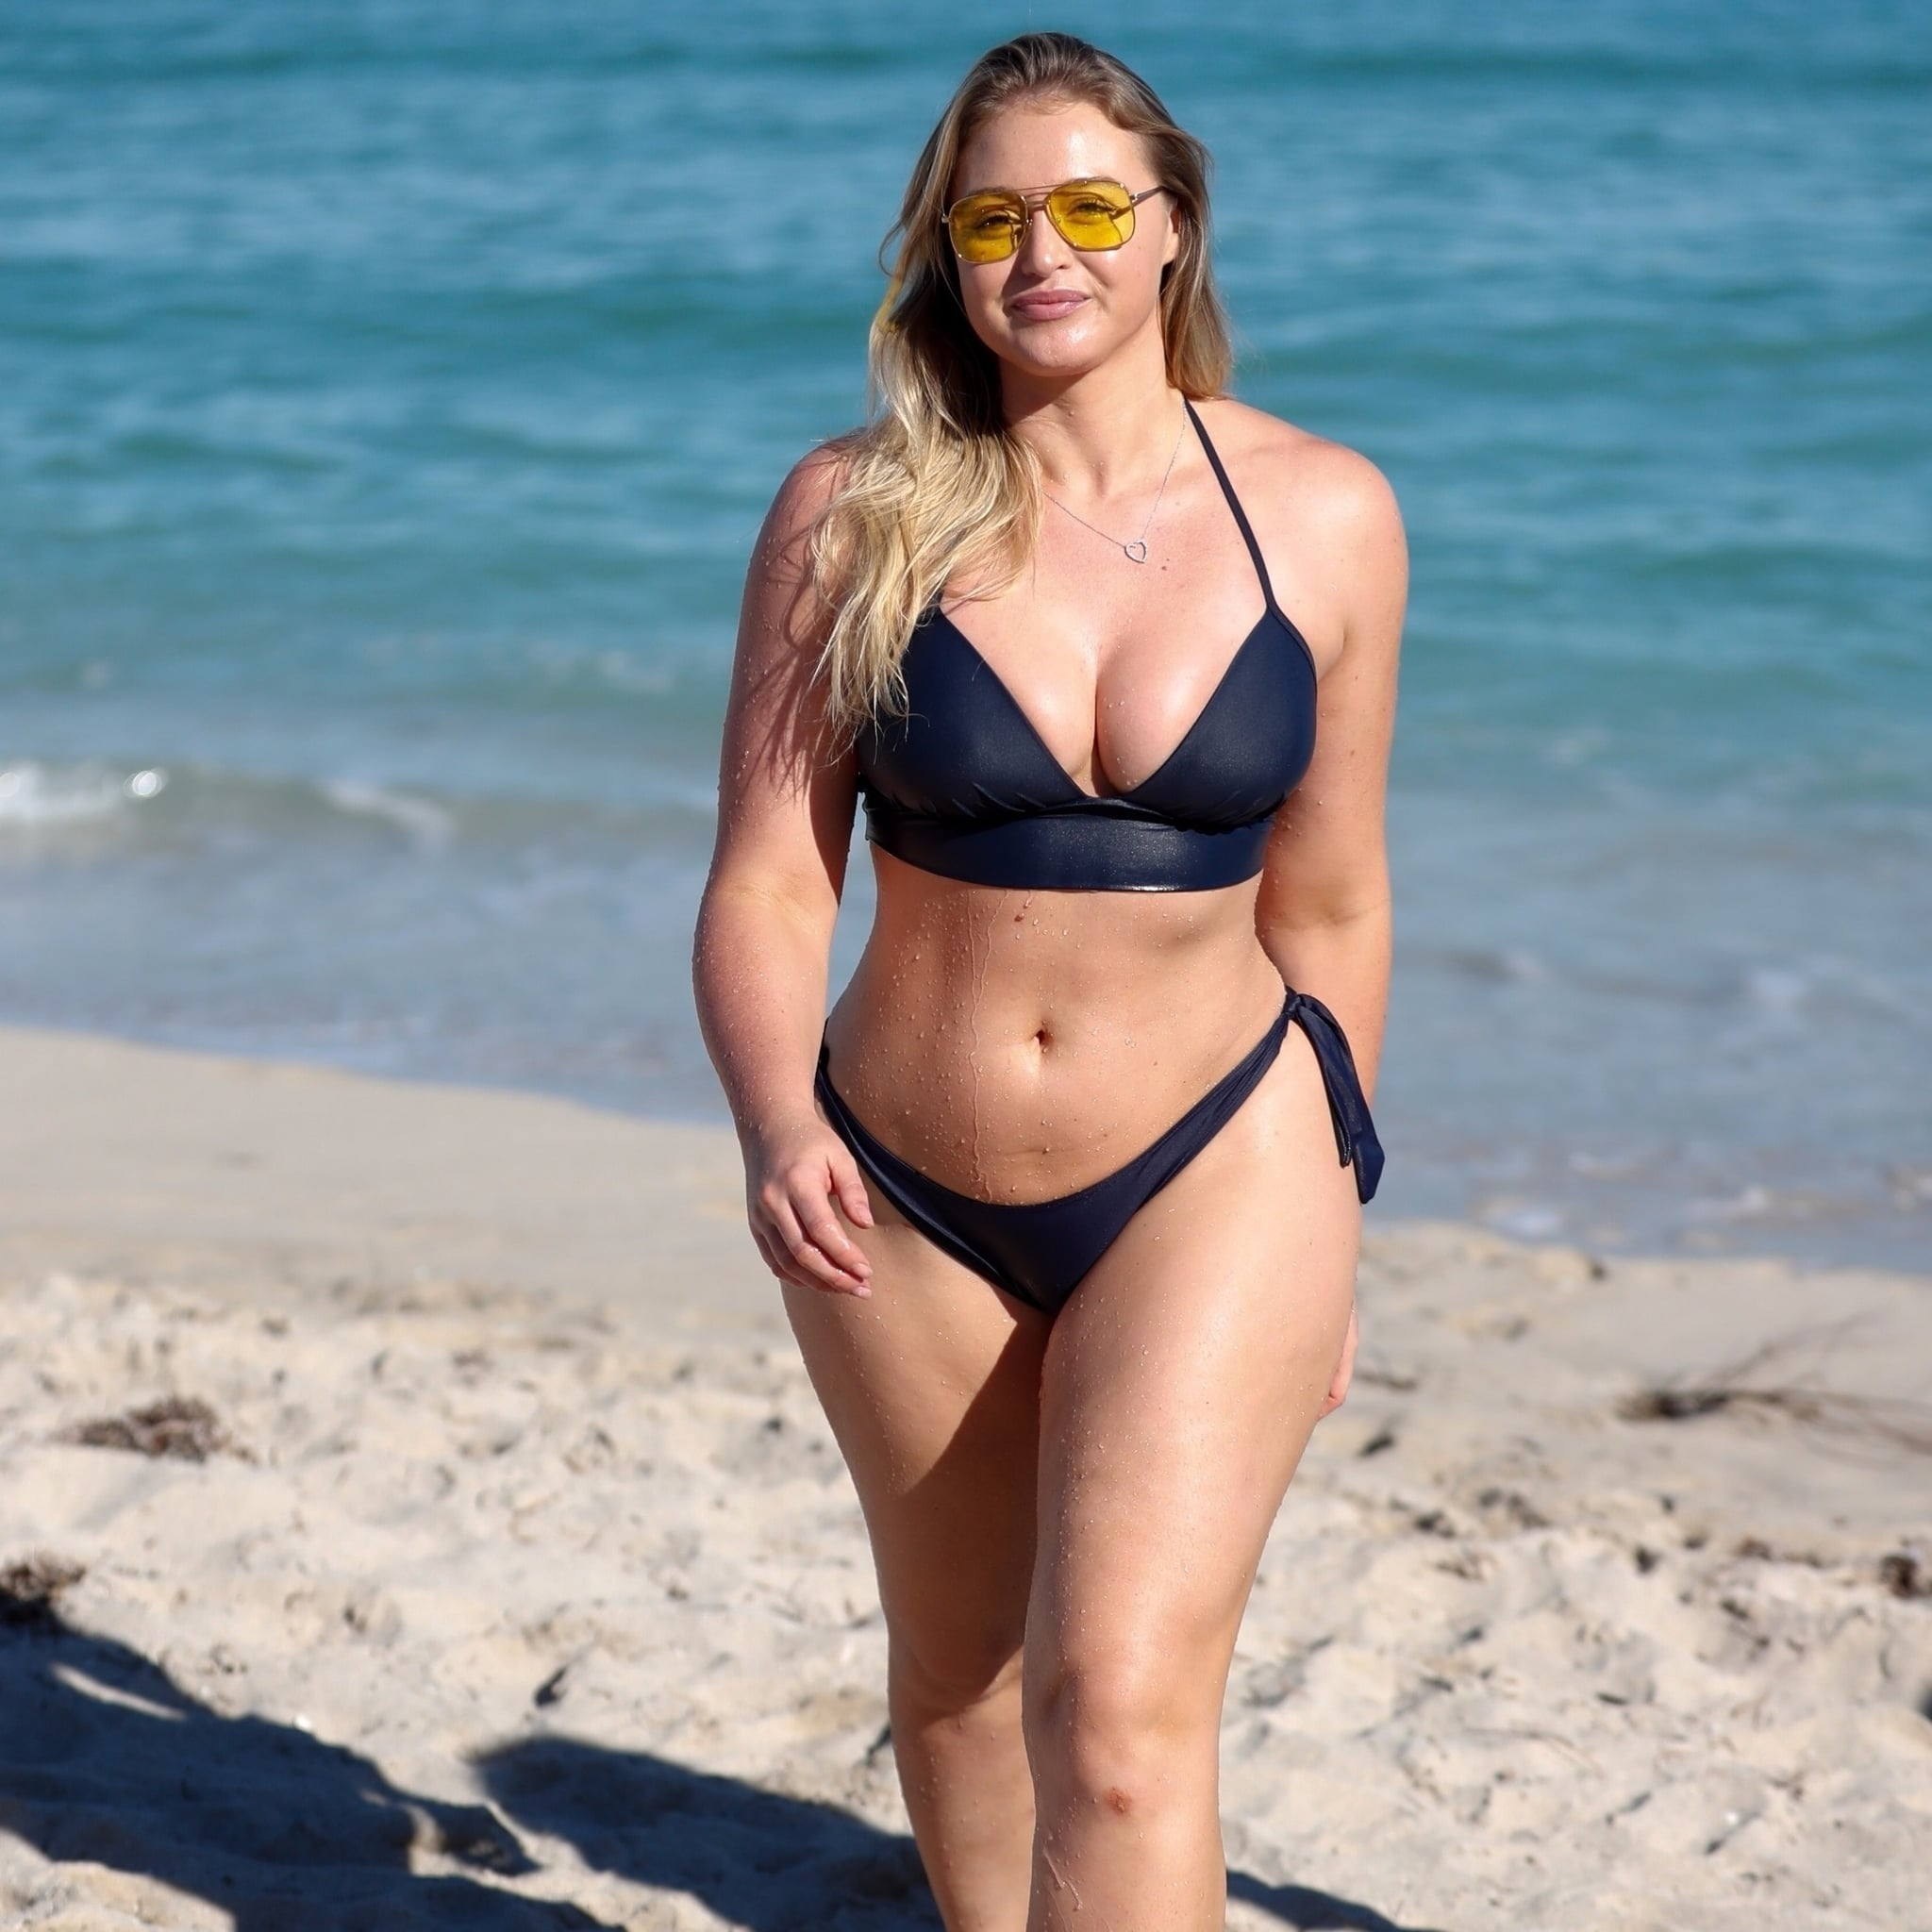 Young iskra nude (84 foto and video), Tits, Bikini, Selfie, butt 2017